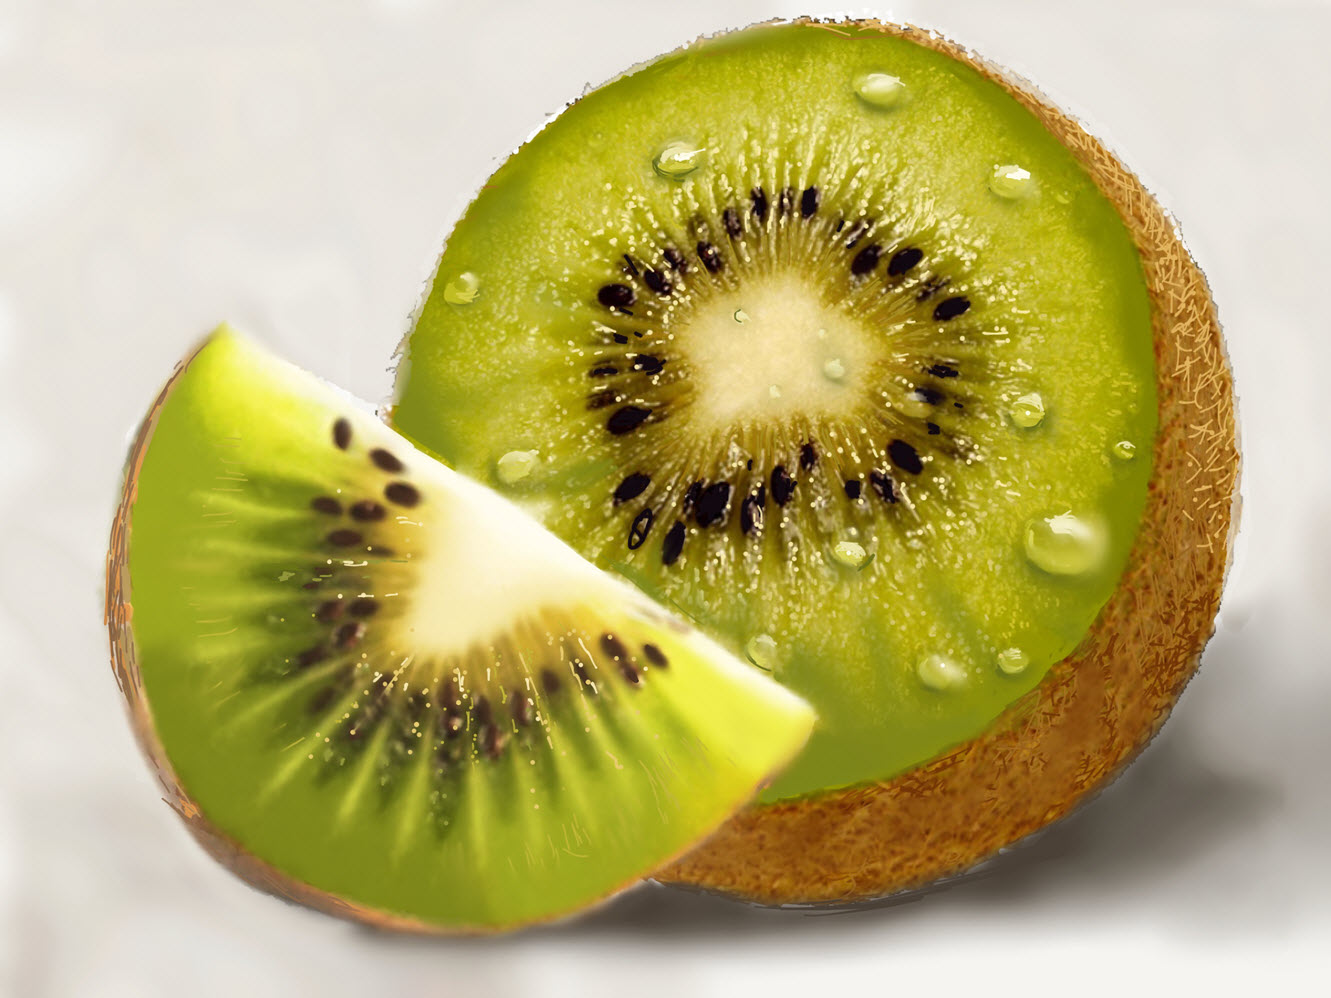 Still Life with a Kiwis